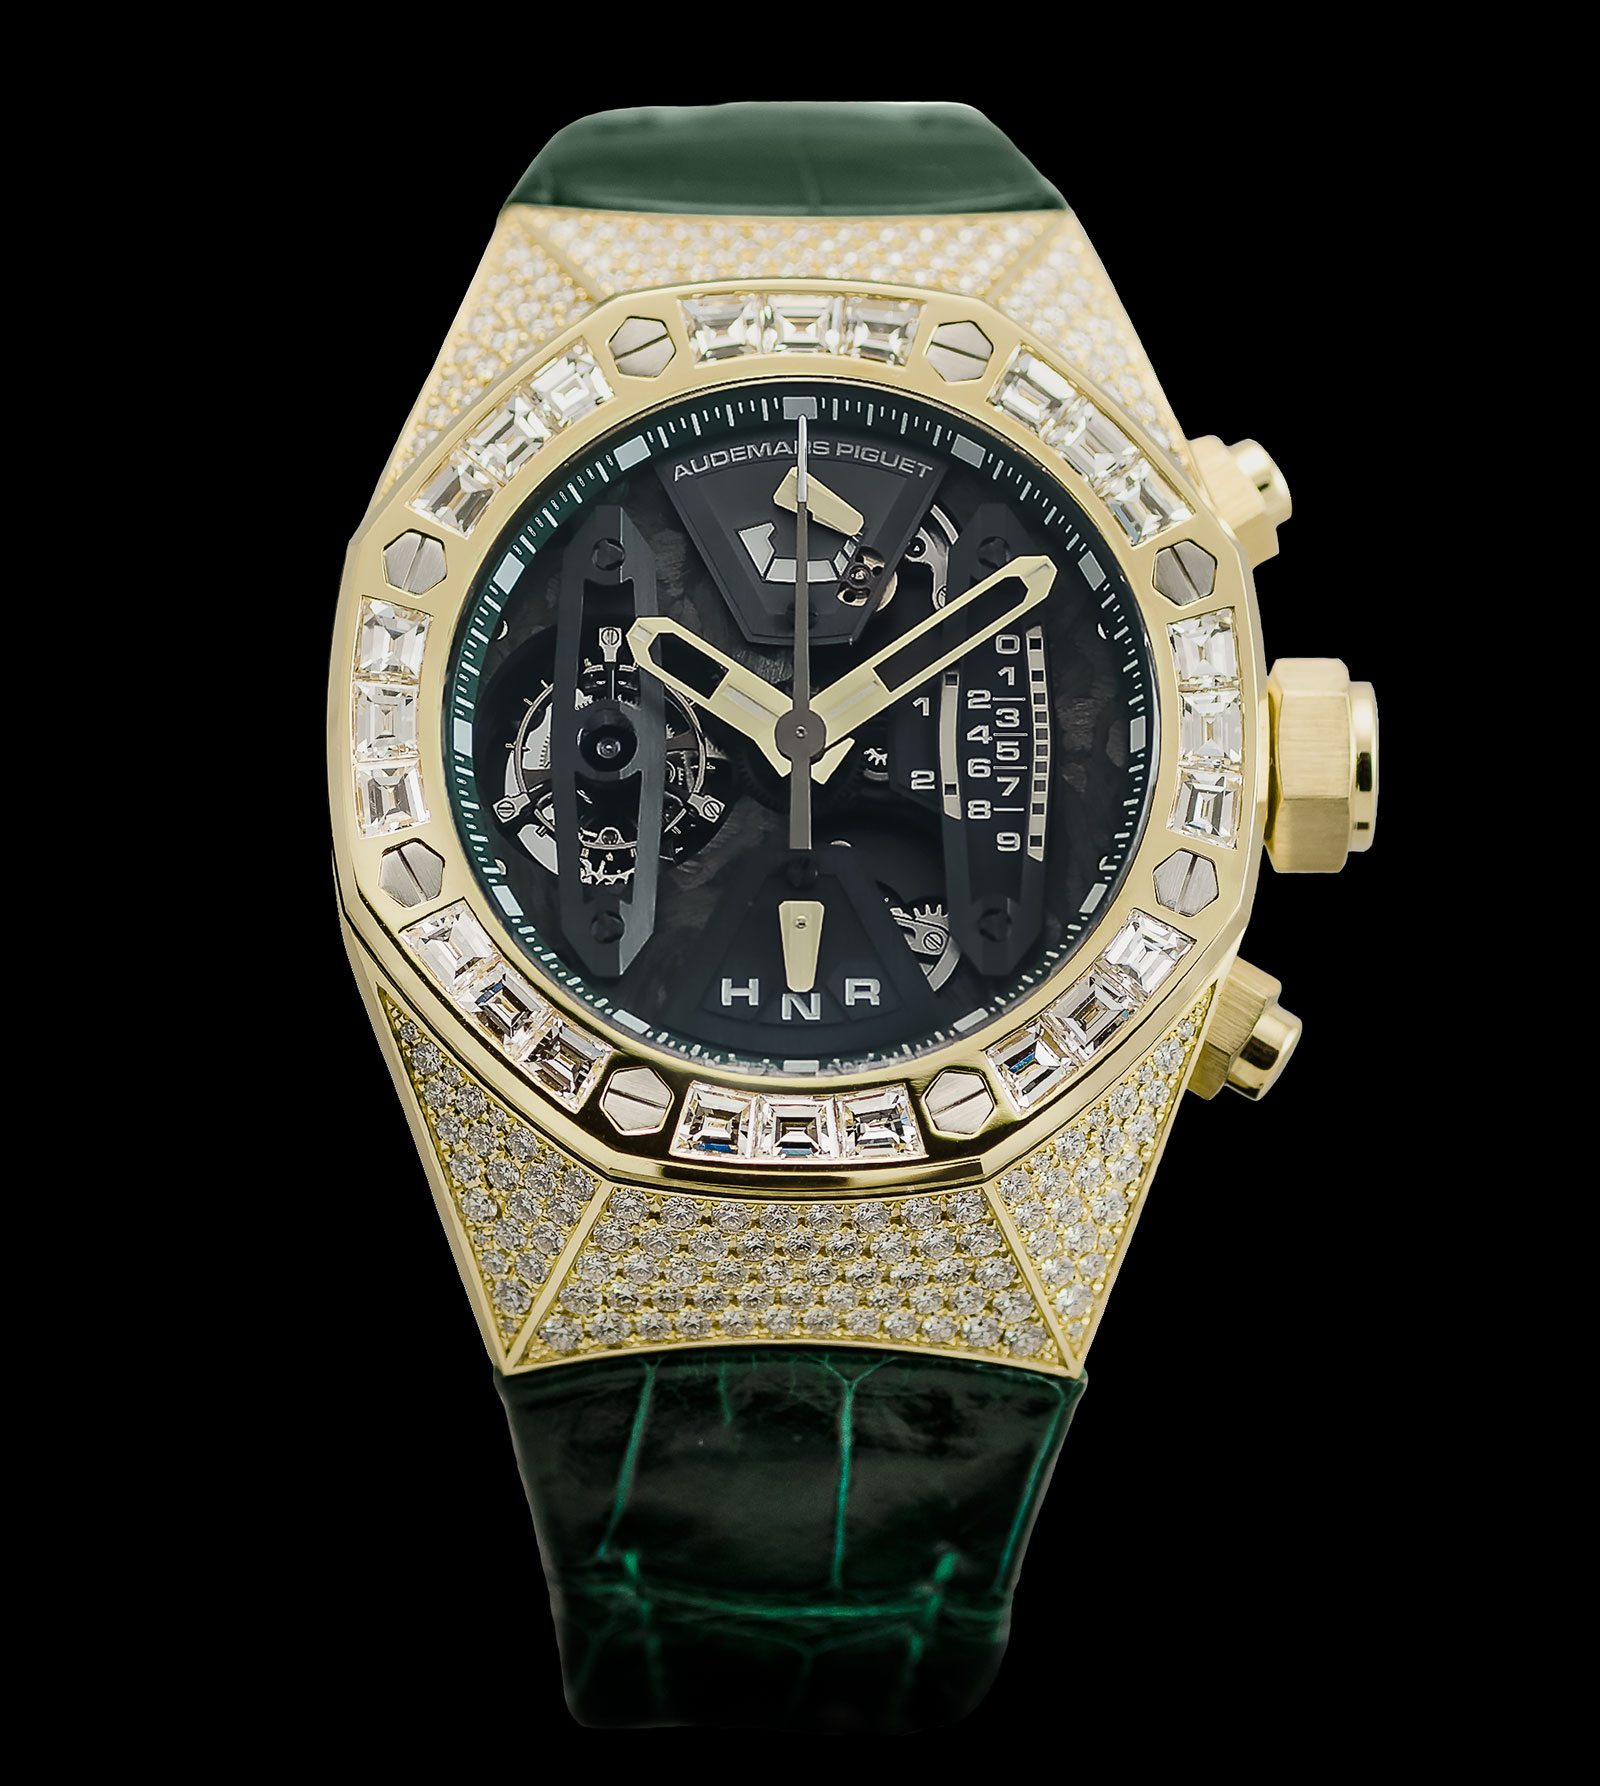 Audemars Piguet Royal Oak Concept Tourbillon Chronograph yellow gold diamond pave 1